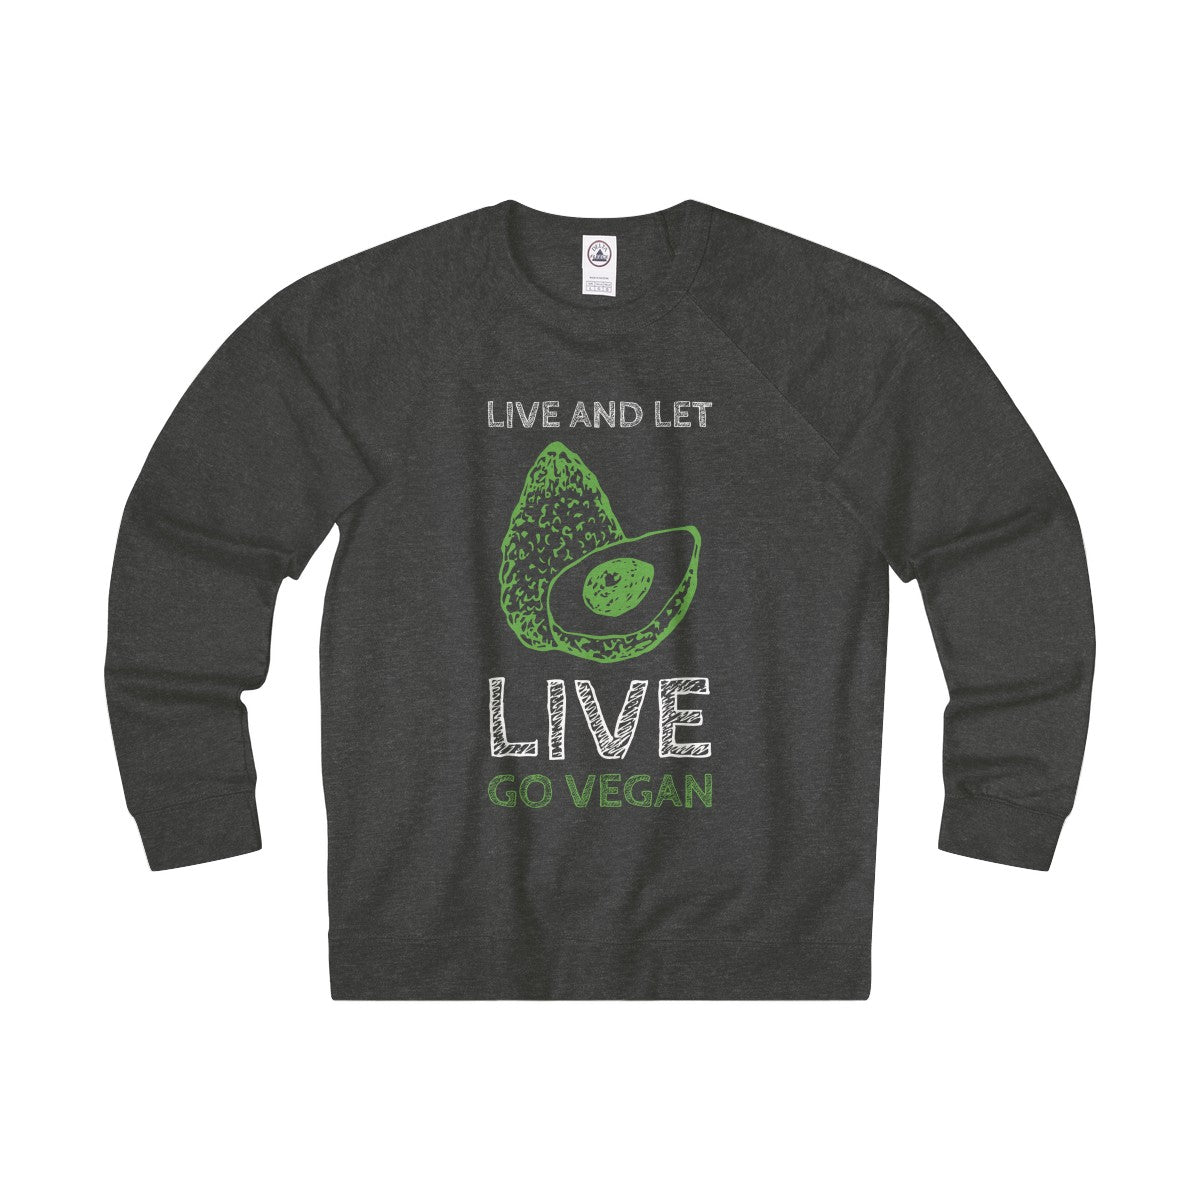 Live and Let Live- Go Vegan Unisex Raglan Sweatshirt - DaVatka Fashion